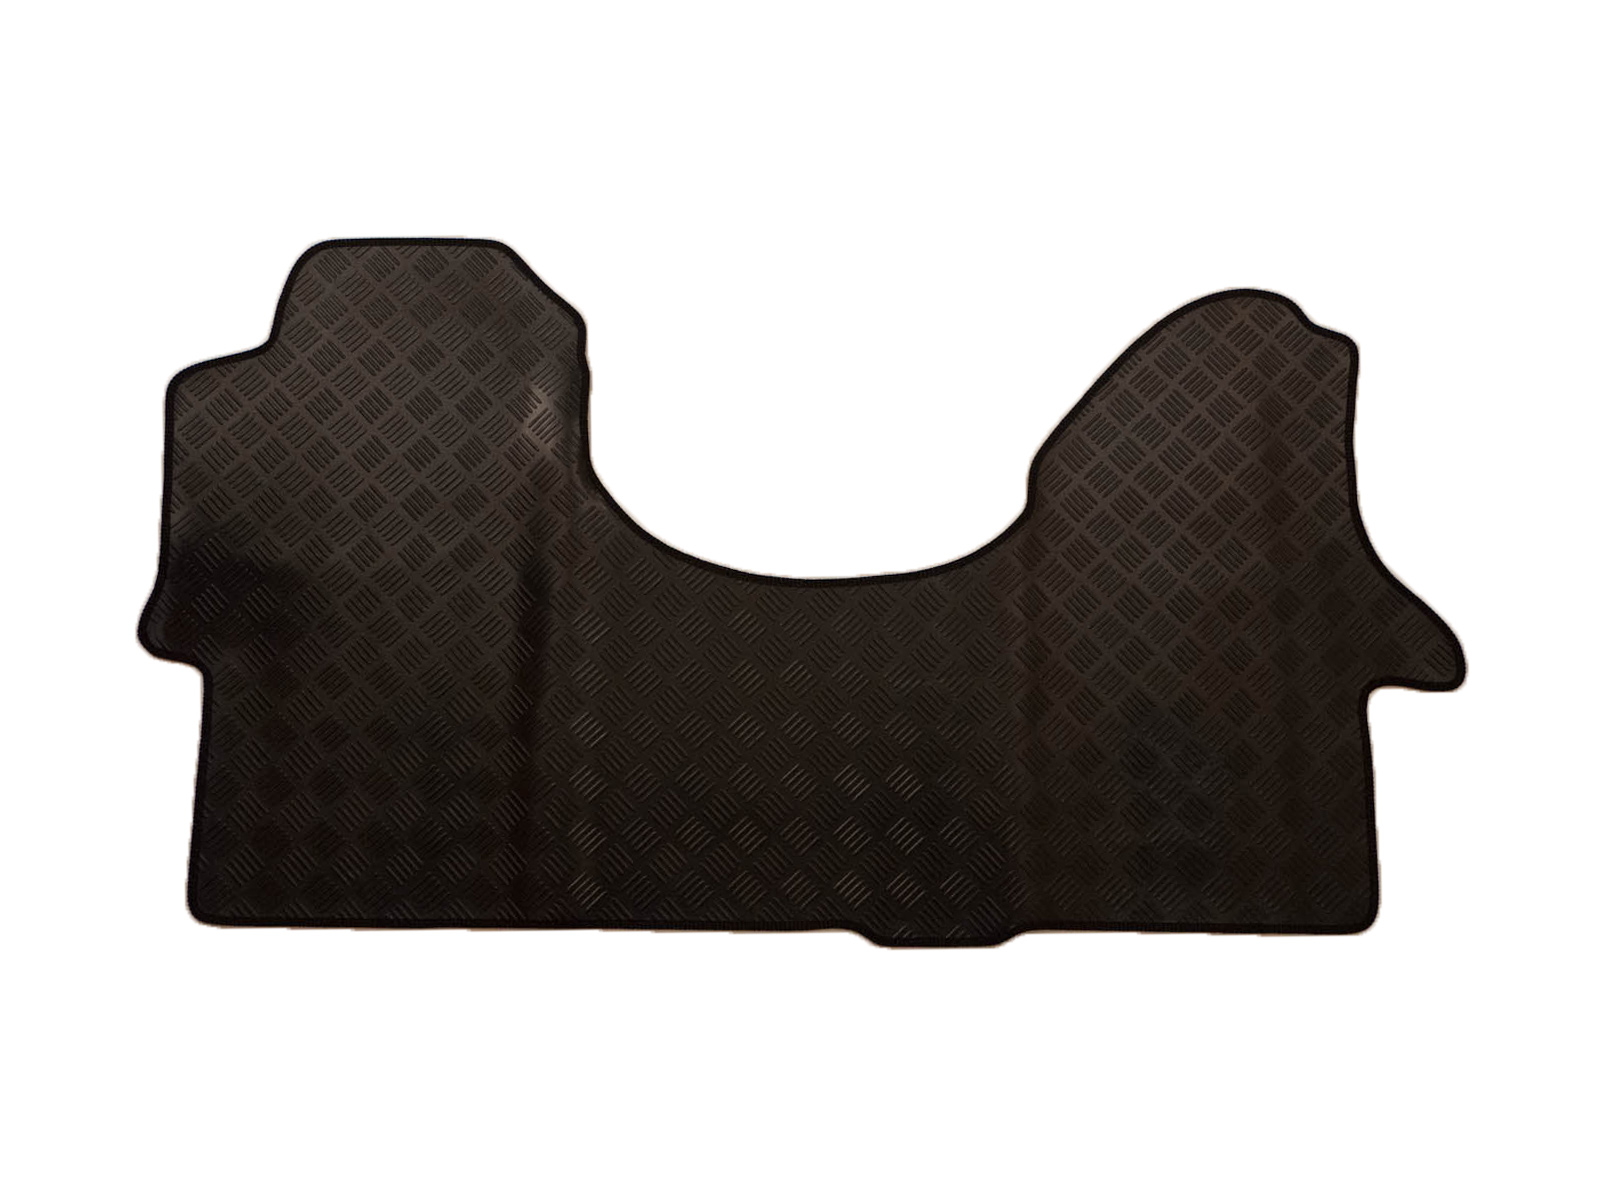 Tailored fit durable black rubber 1 piece floor mat for vw for 1 piece floor mats